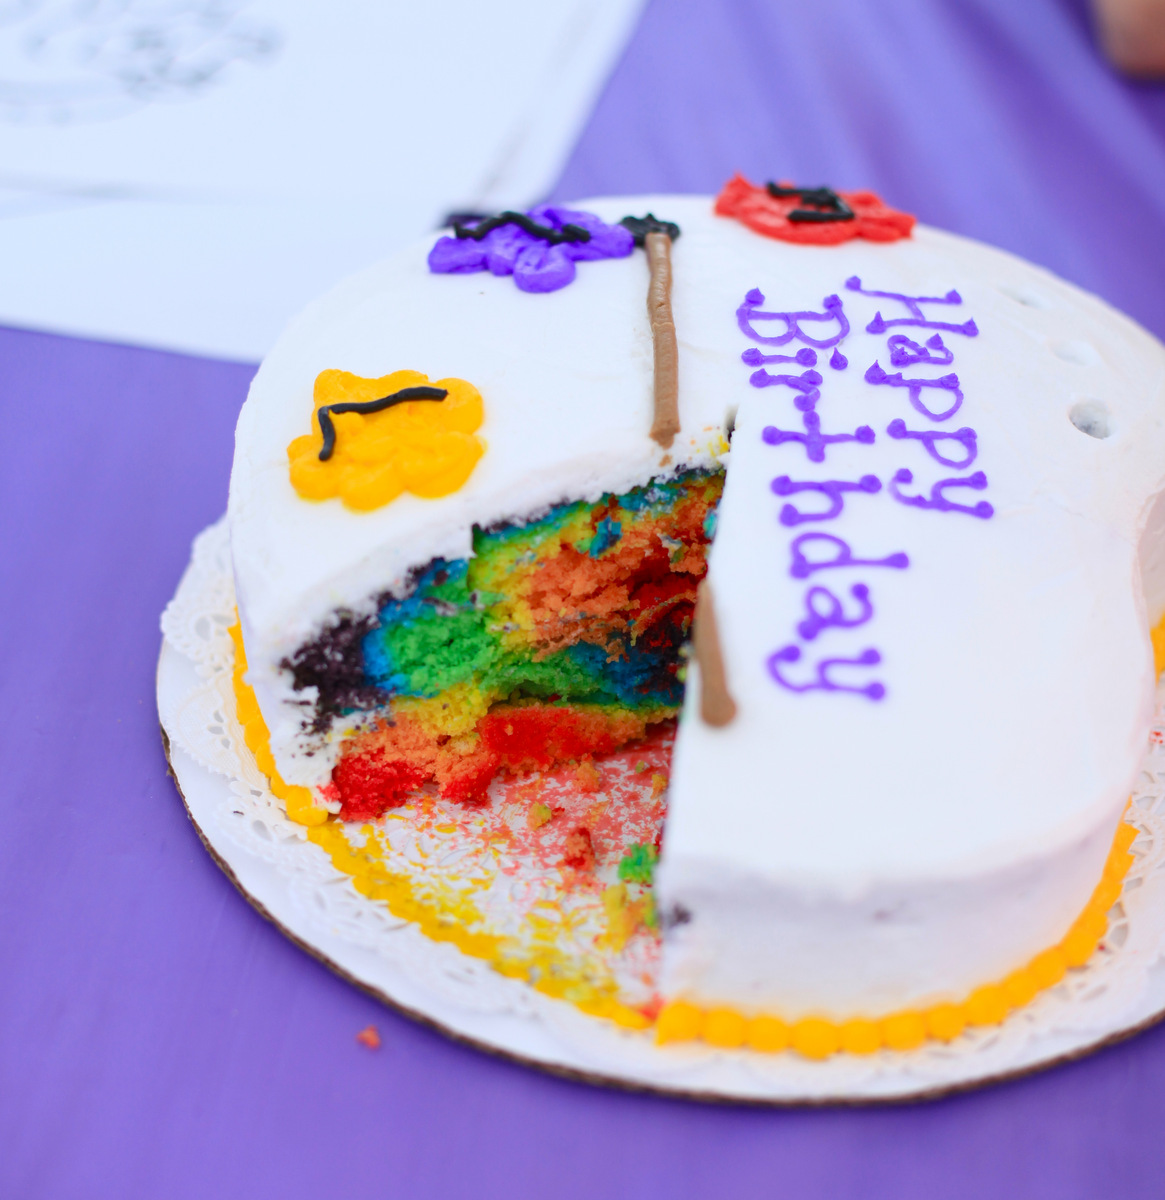 Invite and Delight: Amazing Rainbow Cake - photo#15